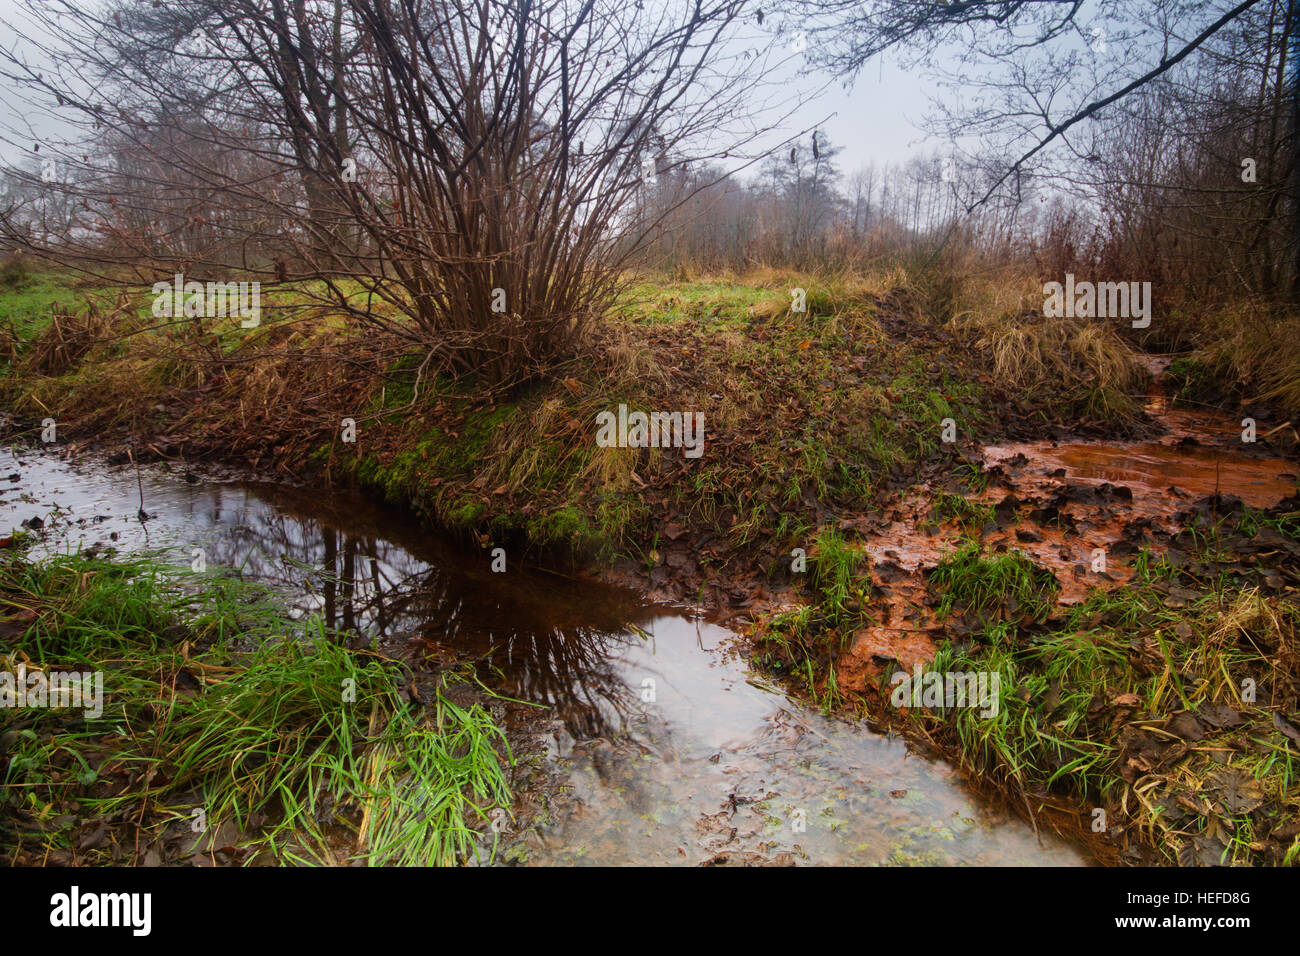 Seepage of iron rich groundwater into a small stream - Stock Image